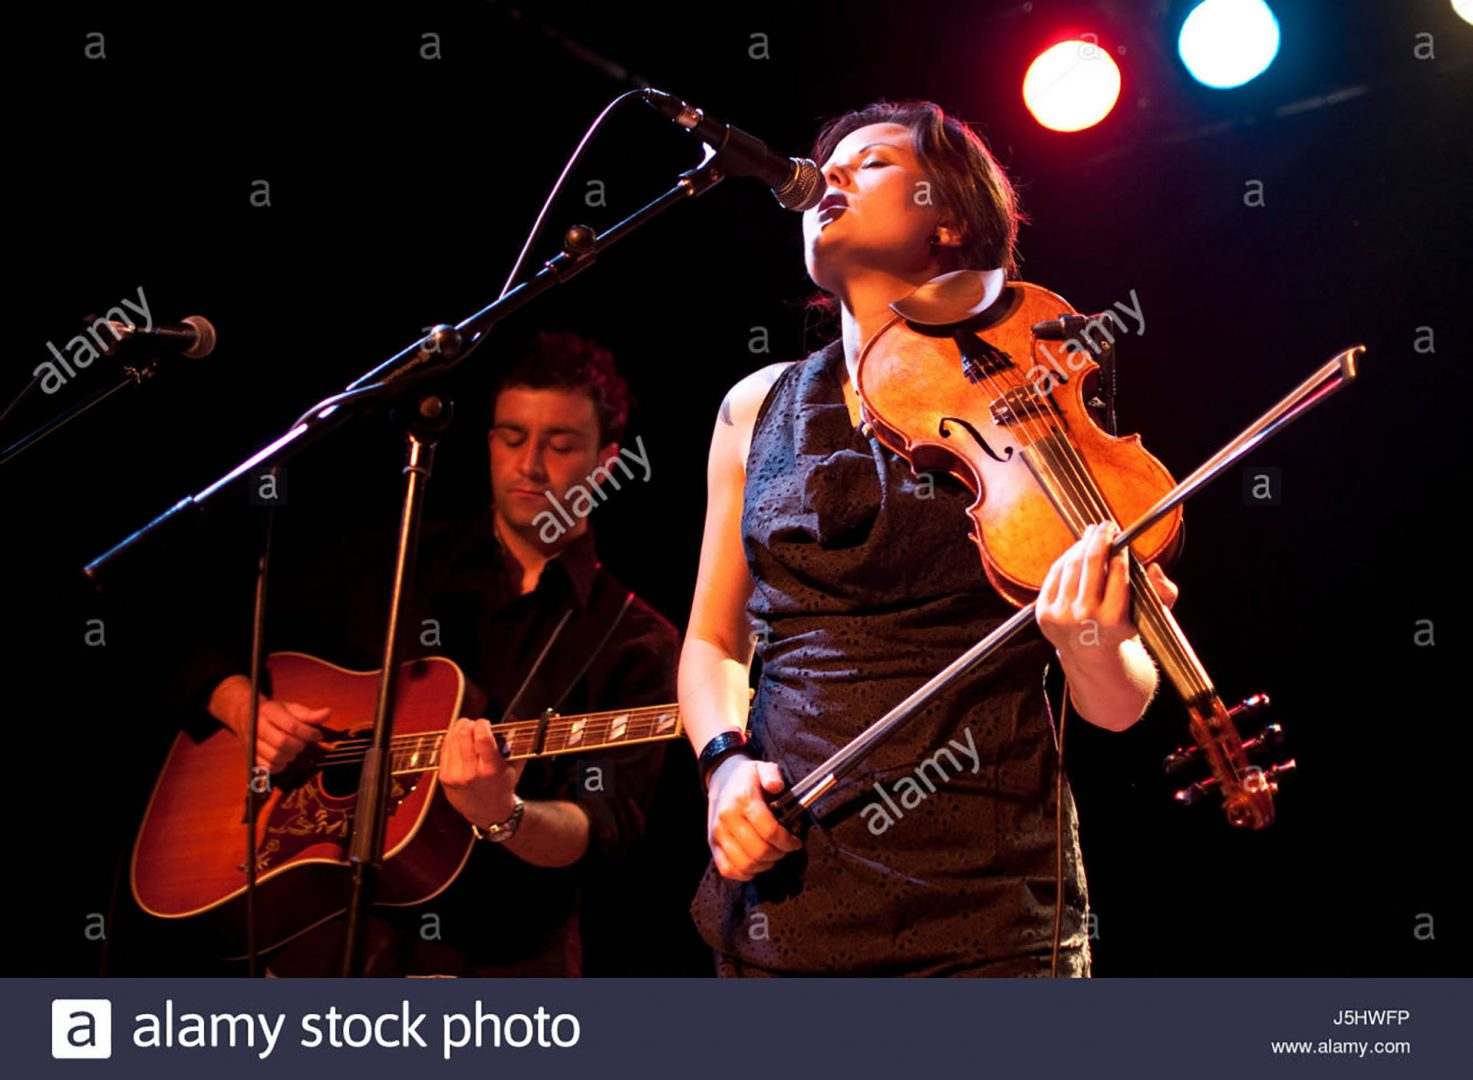 Live music photo of Irish folk musician